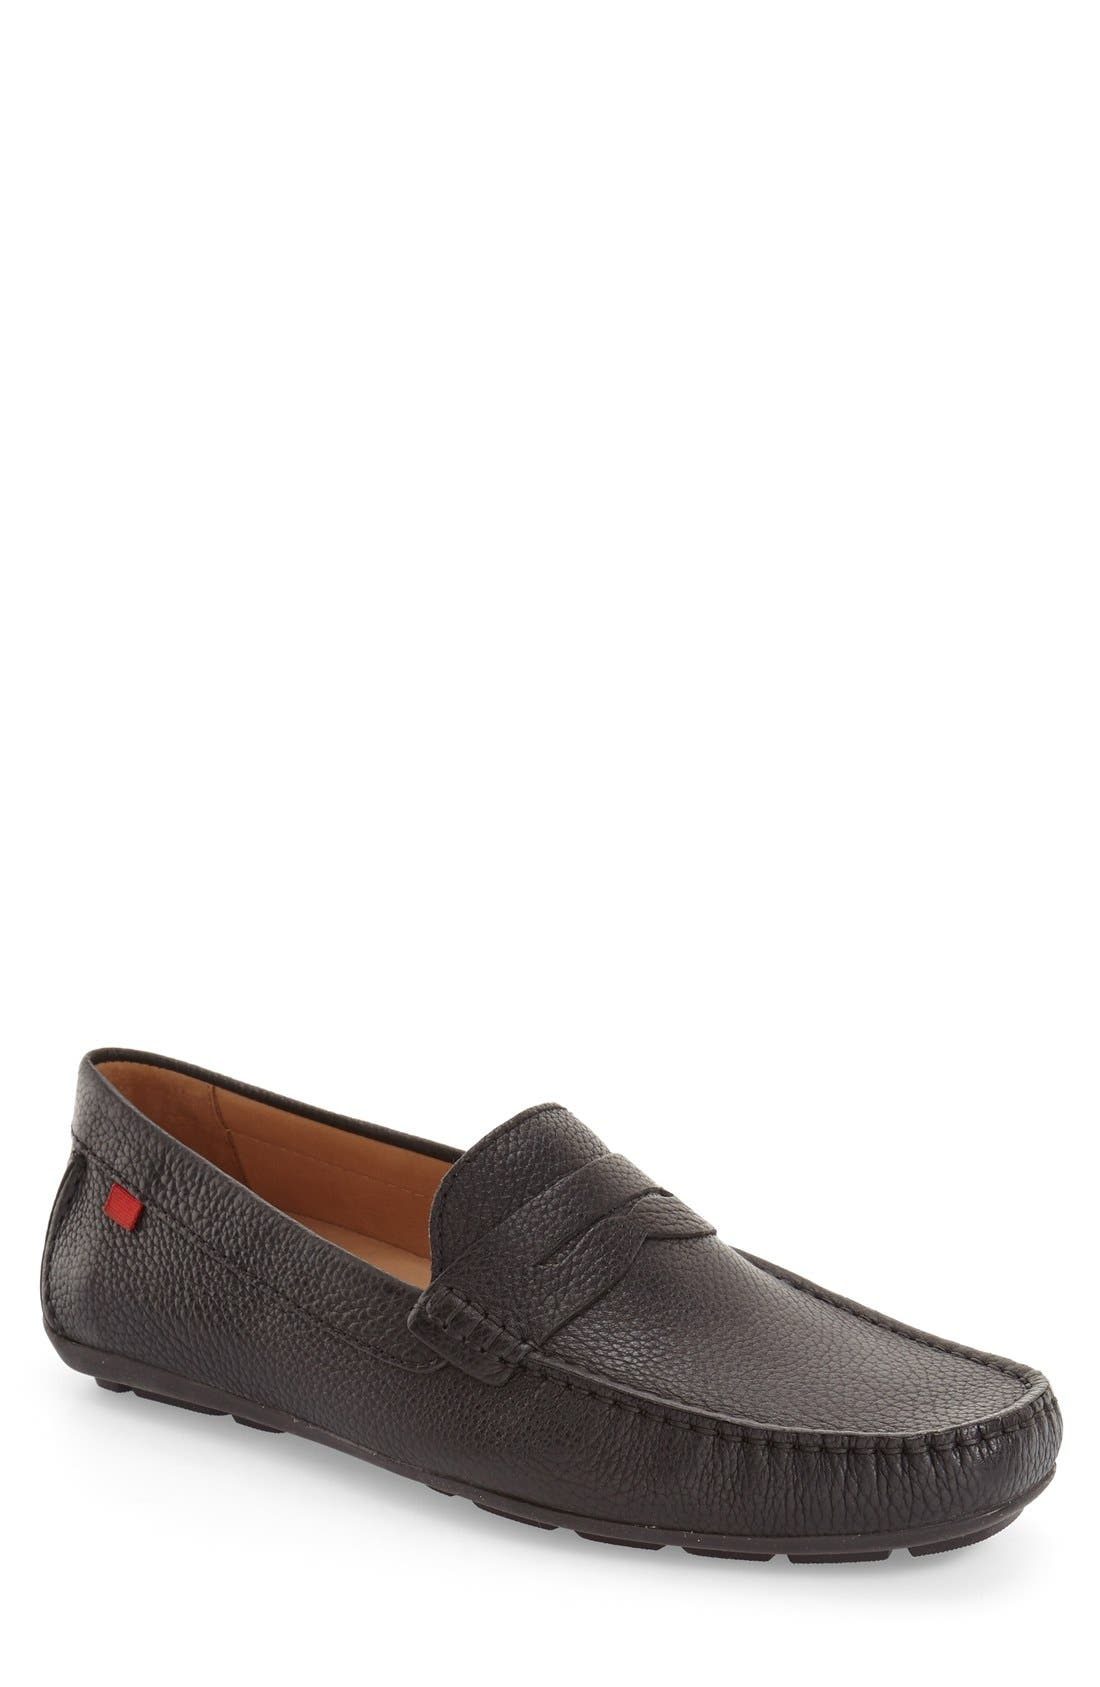 Marc Joseph New York 'Union Street' Penny Loafer (Men)